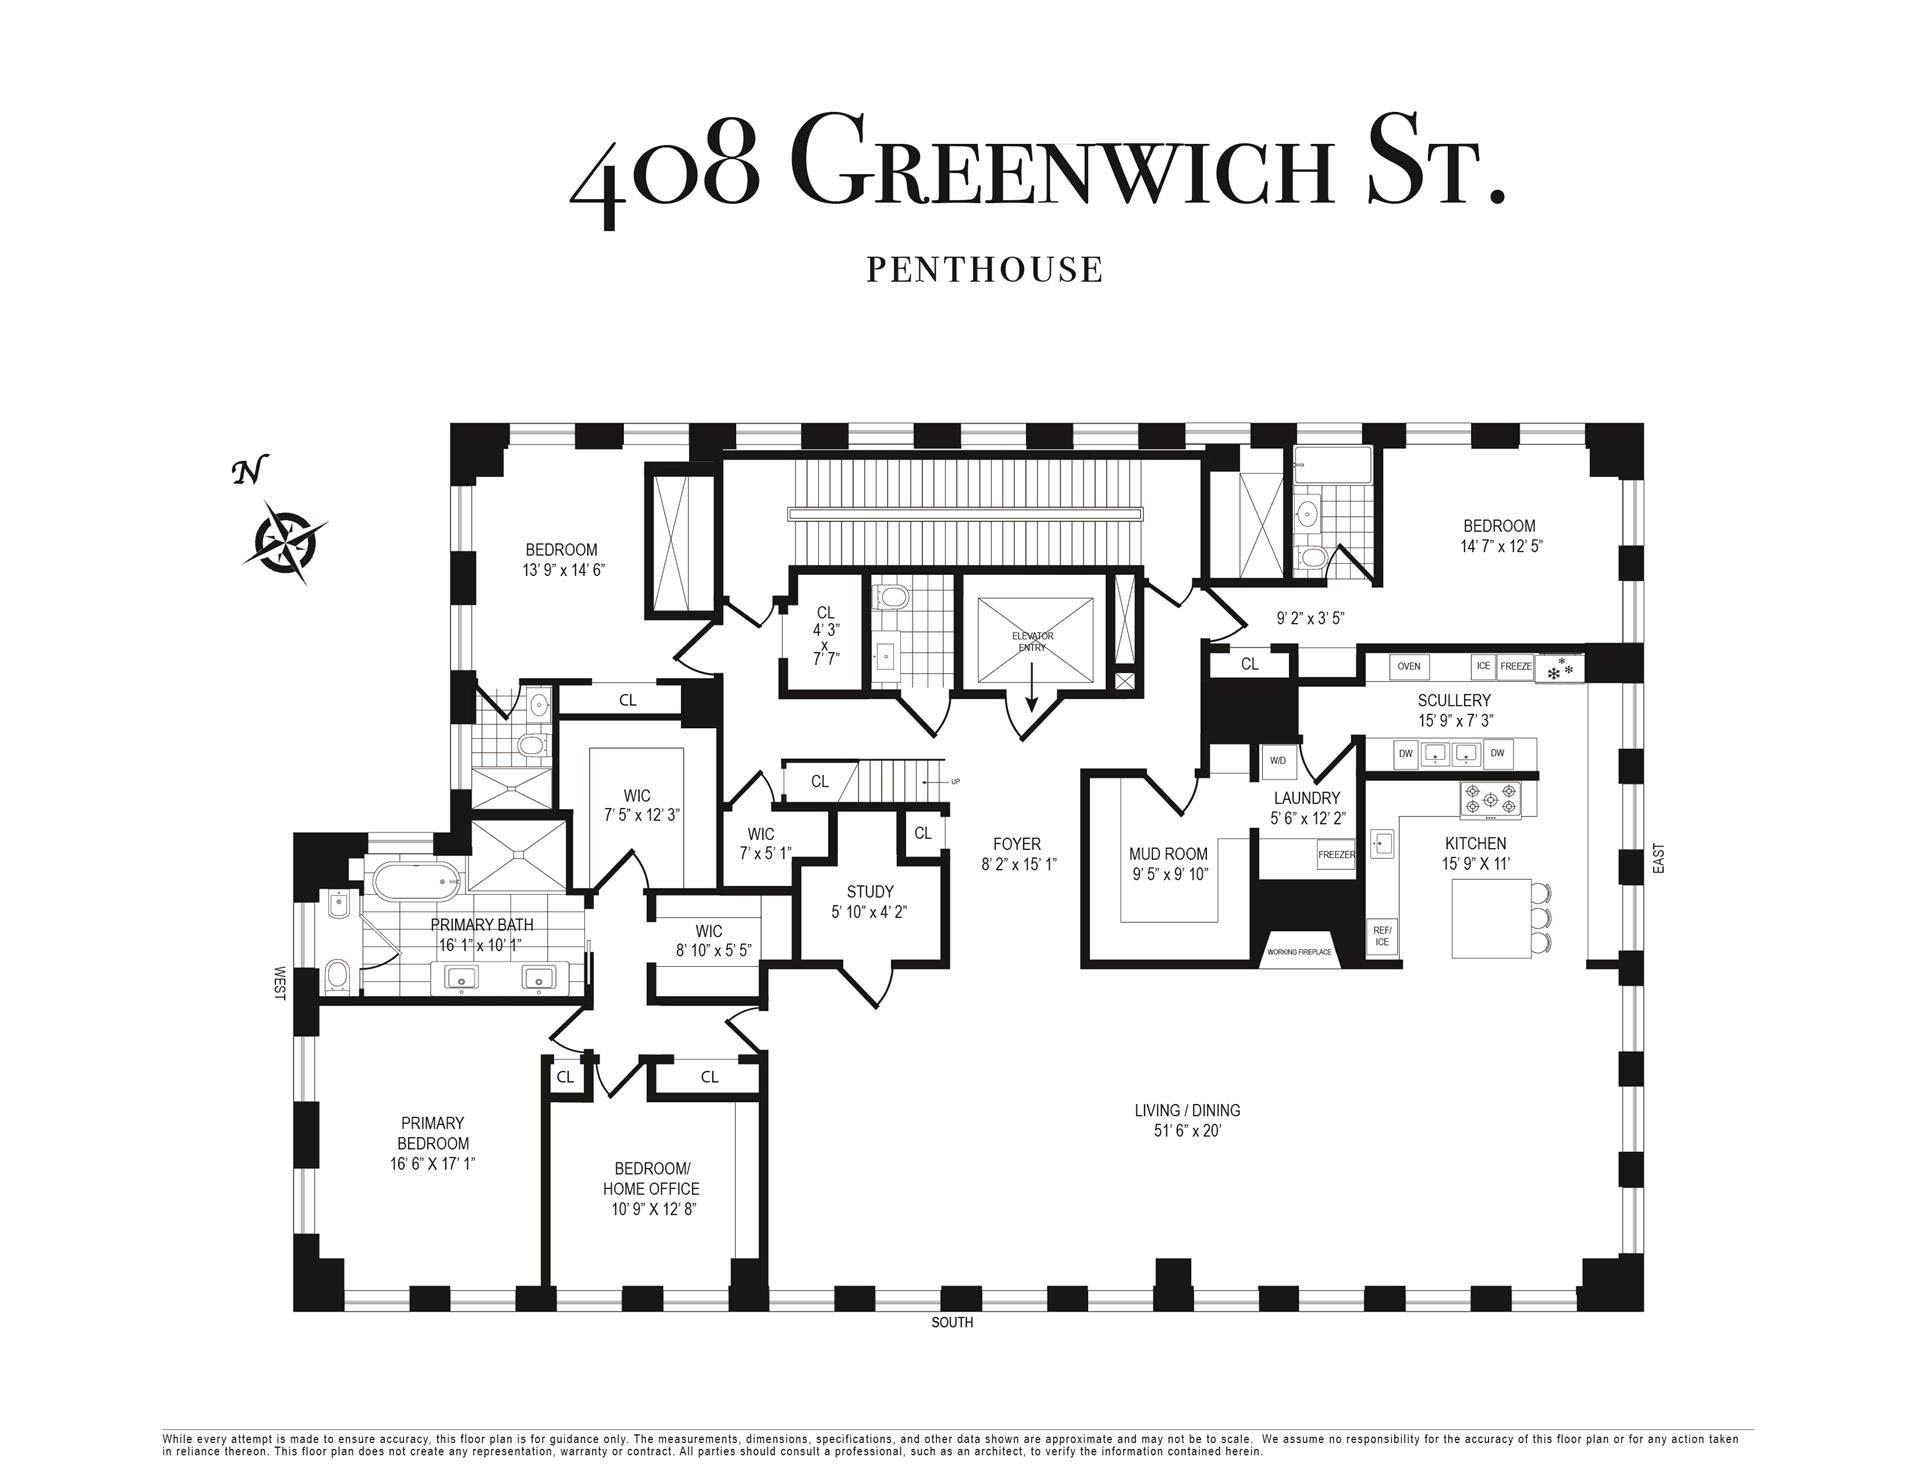 1. Condominiums for Sale at 408 GREENWICH ST , PH TriBeCa, New York, NY 10013